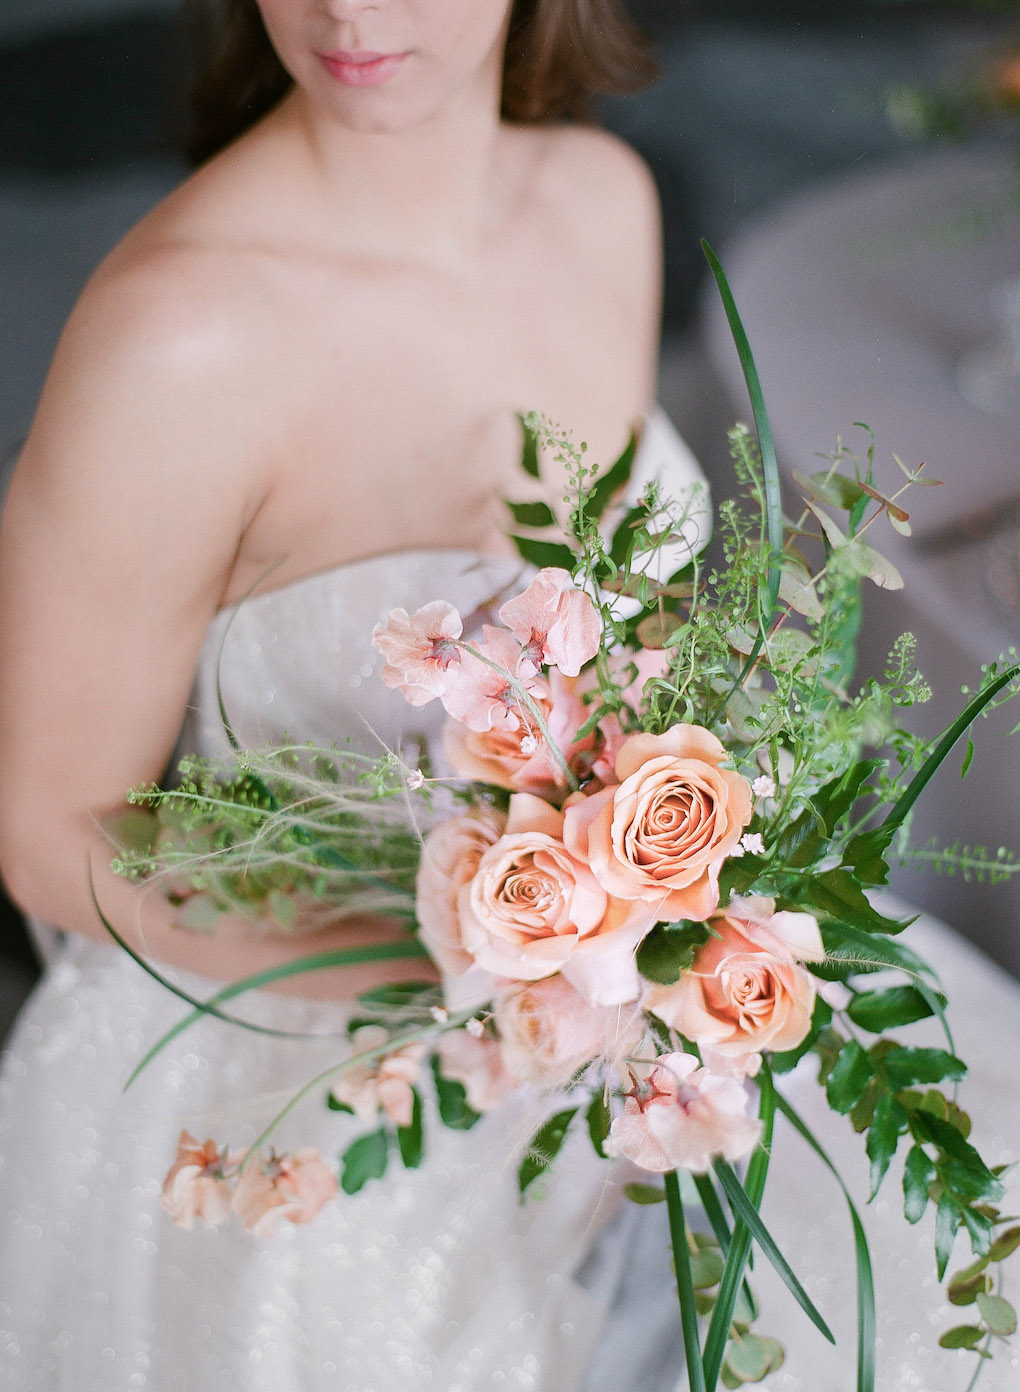 Soft Pink and Textured Bridal Bouquet: Soft and Subtle Palettes of Spring Blossoms | Editorial Shoot at The Renaissance Pittsburgh by Exhale Events. See more inspiration at exhale-events.com!